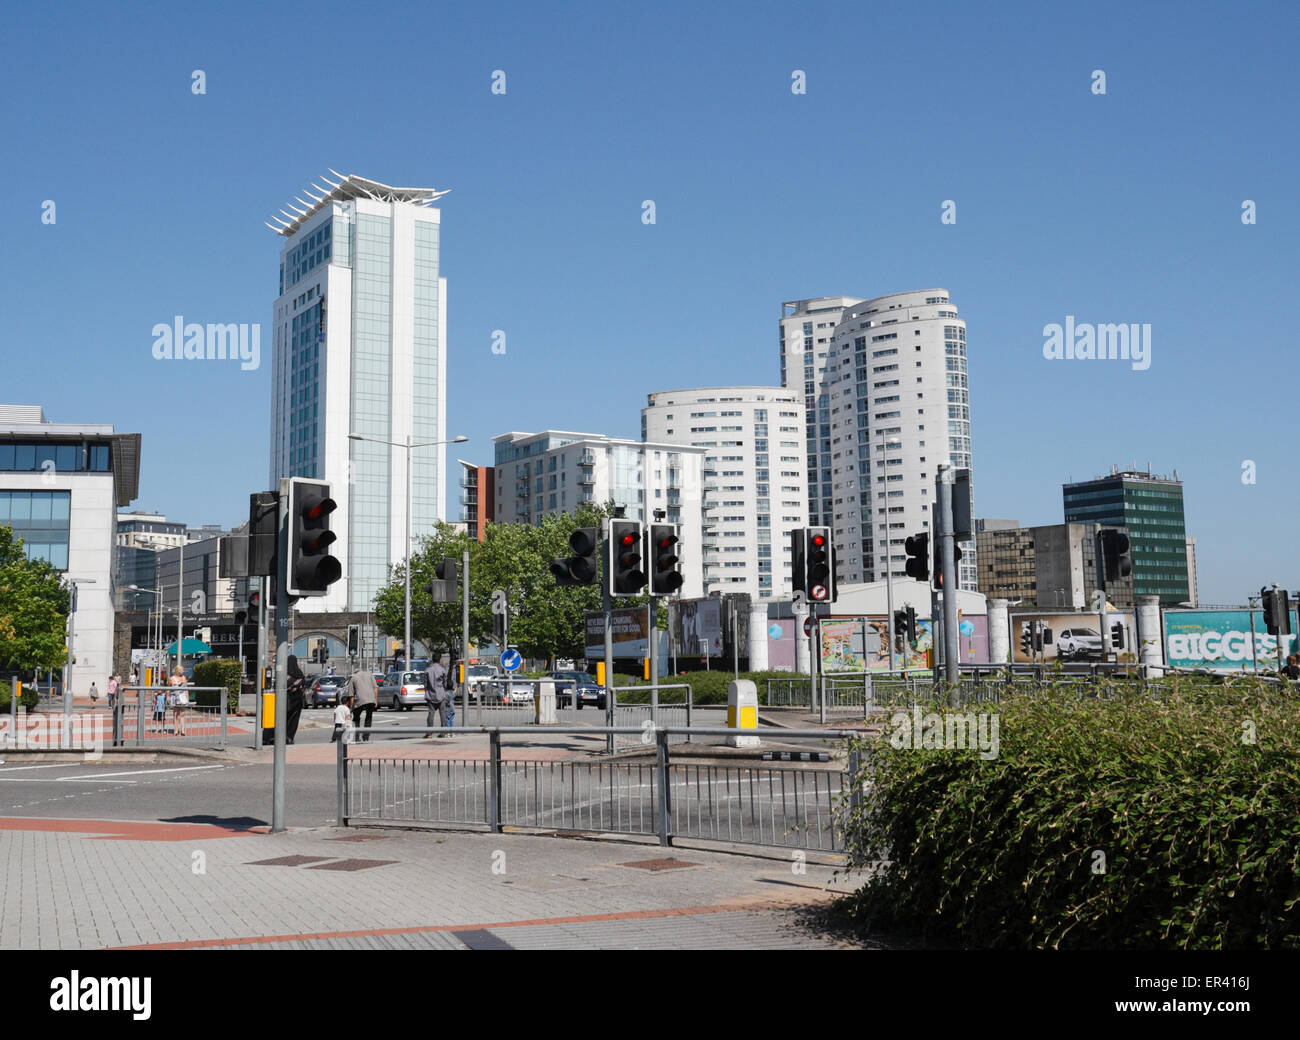 Cardiff City Skyline, Tall Building Structures - Stock Image